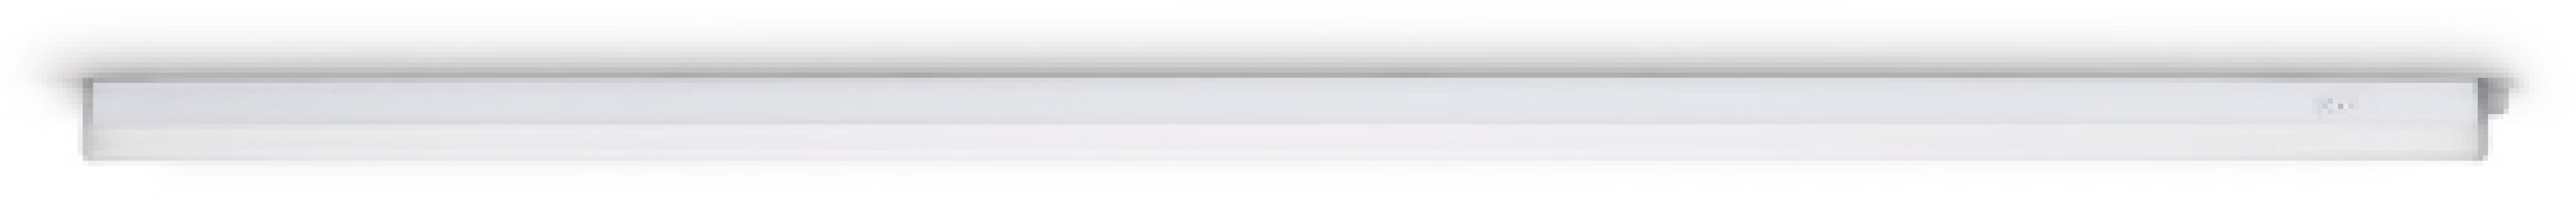 Afbeelding van Witte Philips Linea LINEAR LED 2700K white LED Wall light wandverlichting